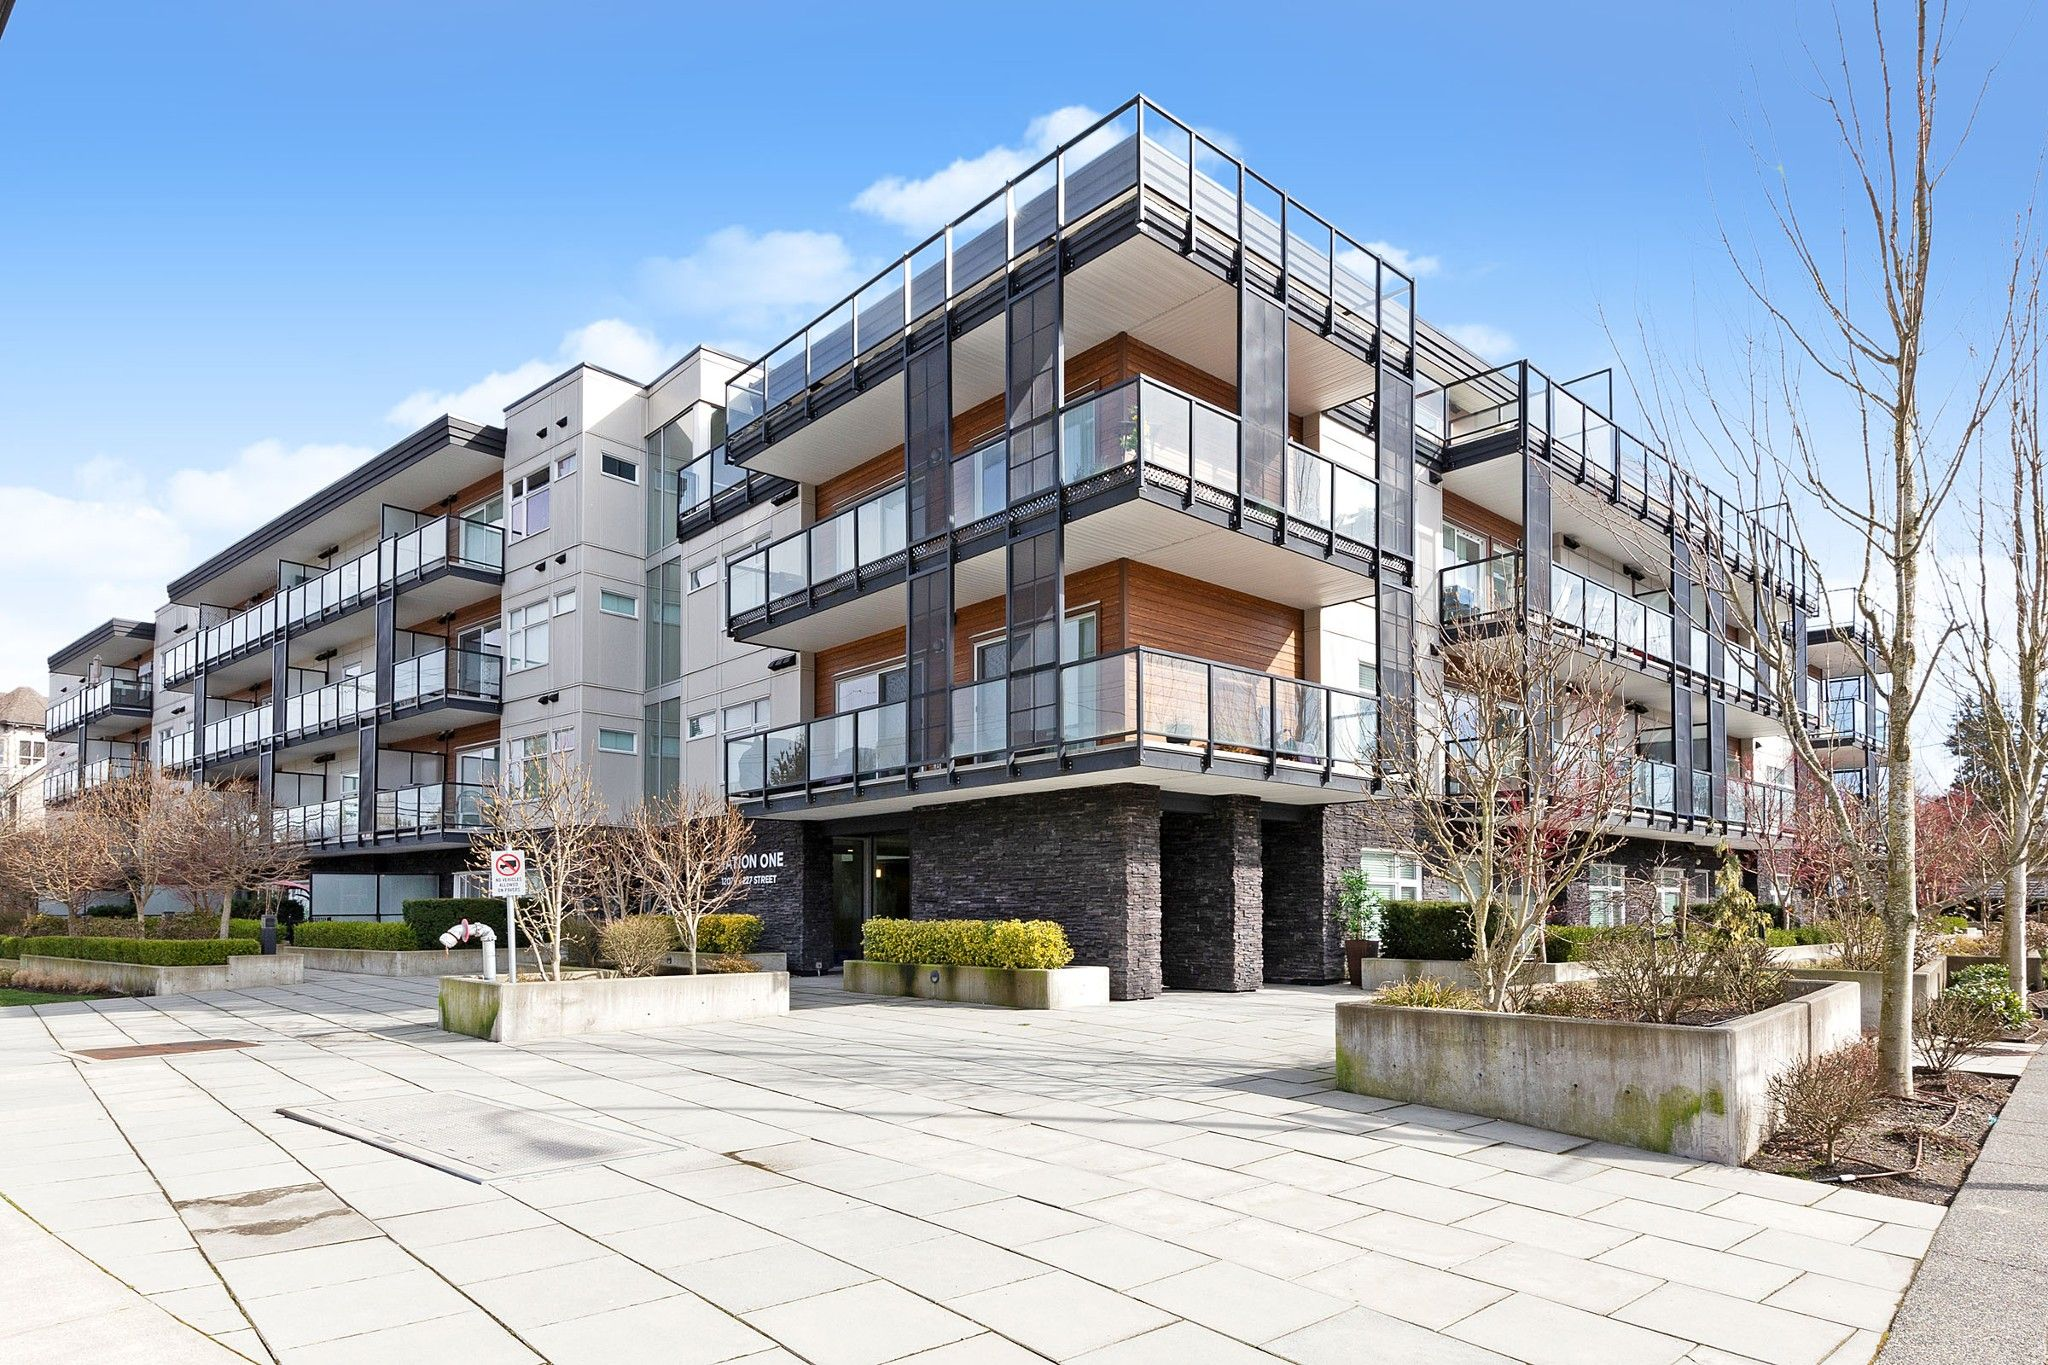 Main Photo: 309 12070 227 Street in Maple Ridge: East Central Condo for sale : MLS®# R2548608